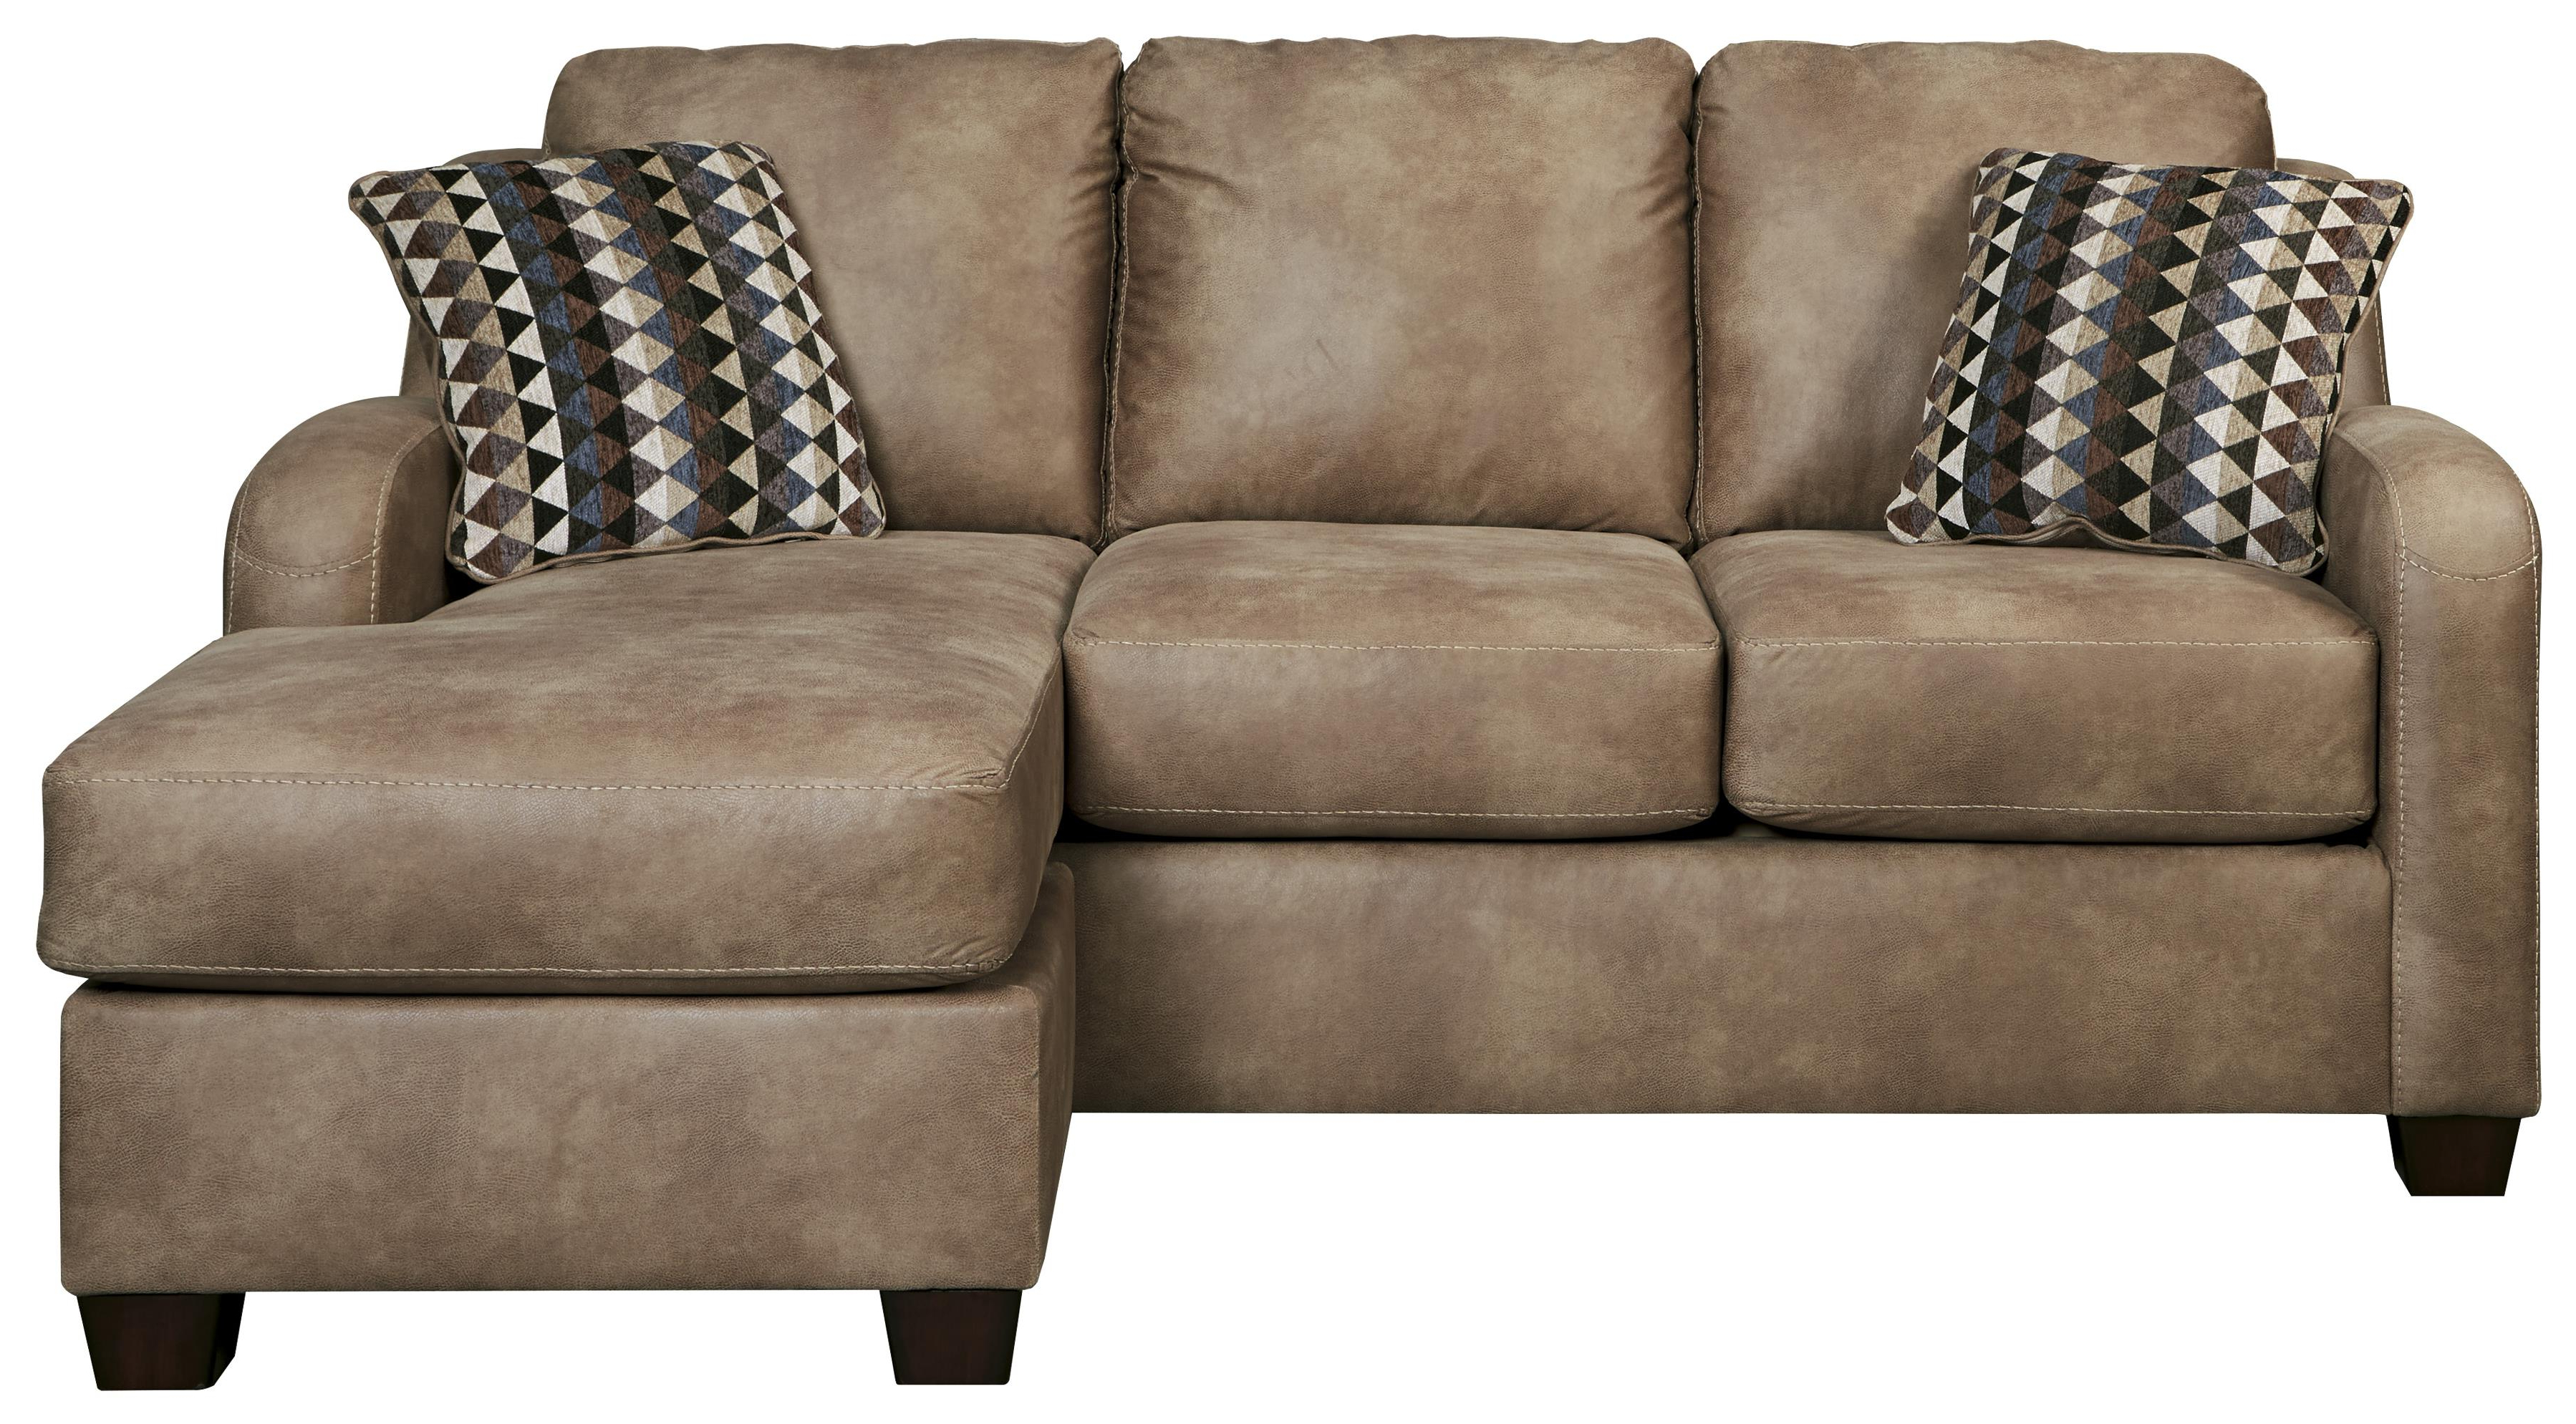 Benchcraft Alturo 6000318 Contemporary Faux Leather Sofa Chaise Pertaining To Trendy Chaise Sofa Chairs (Gallery 2 of 20)